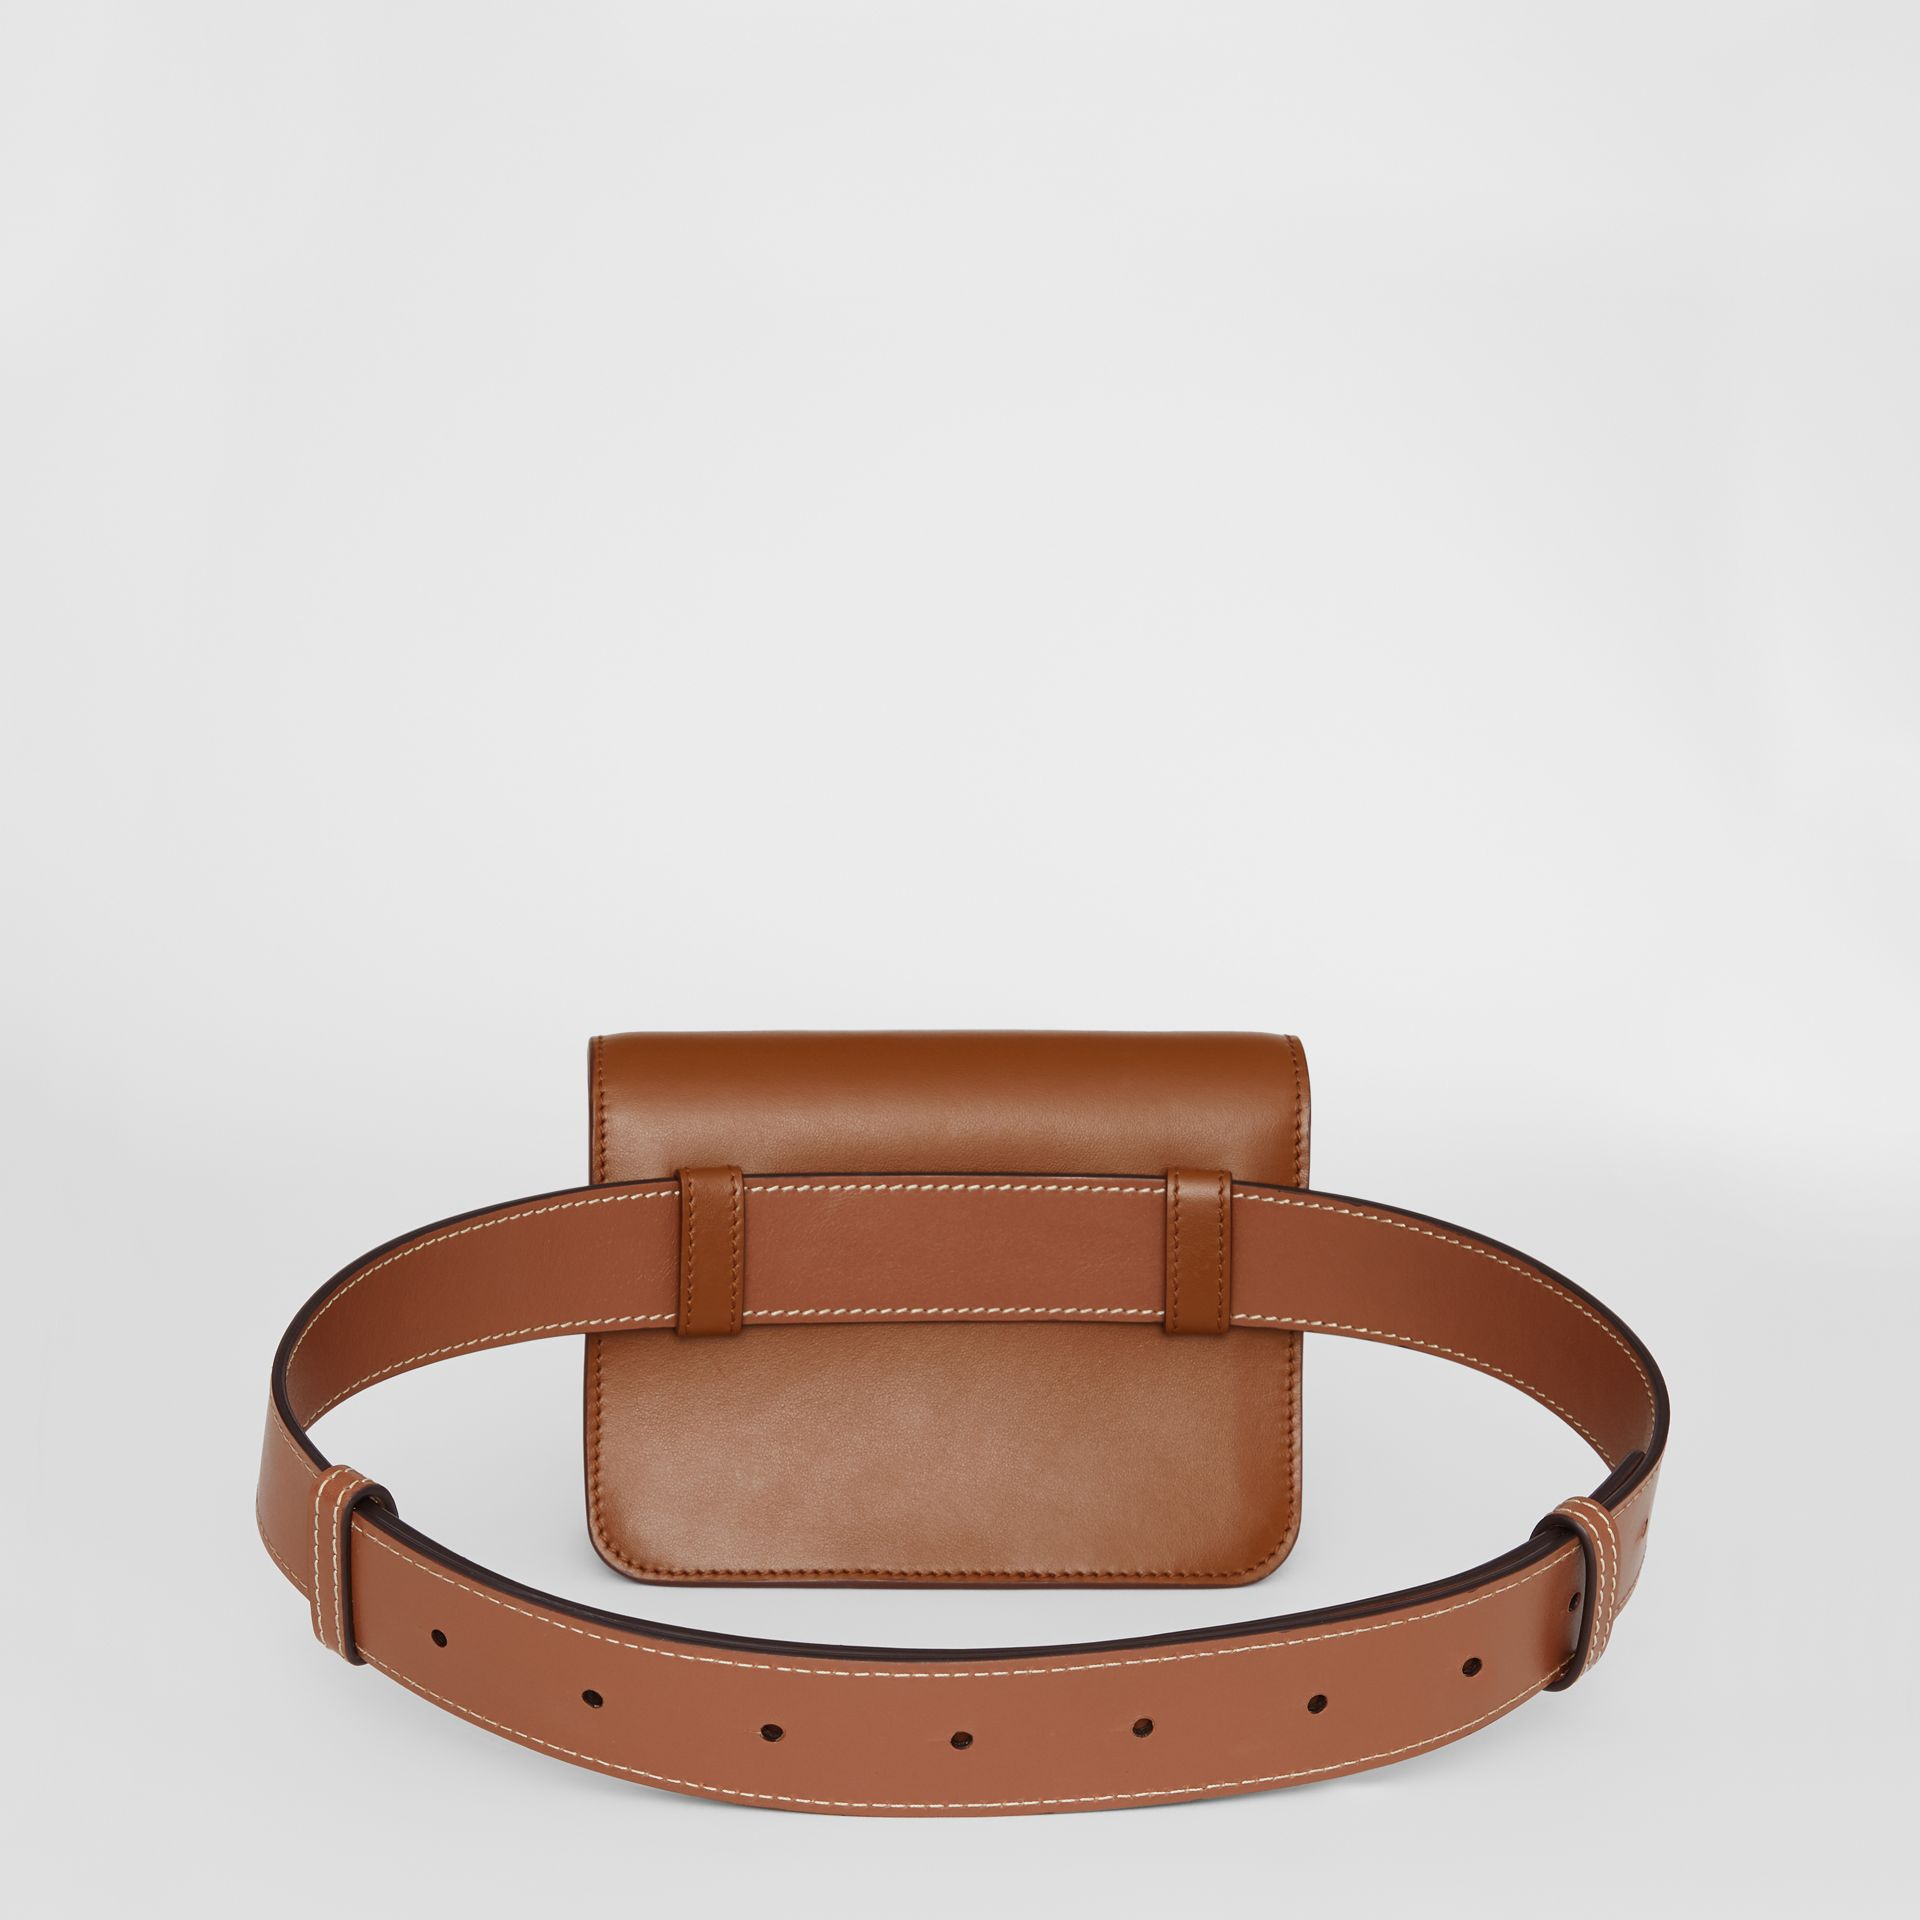 Belted Leather TB Bag in Malt Brown - Women | Burberry Australia - gallery image 7